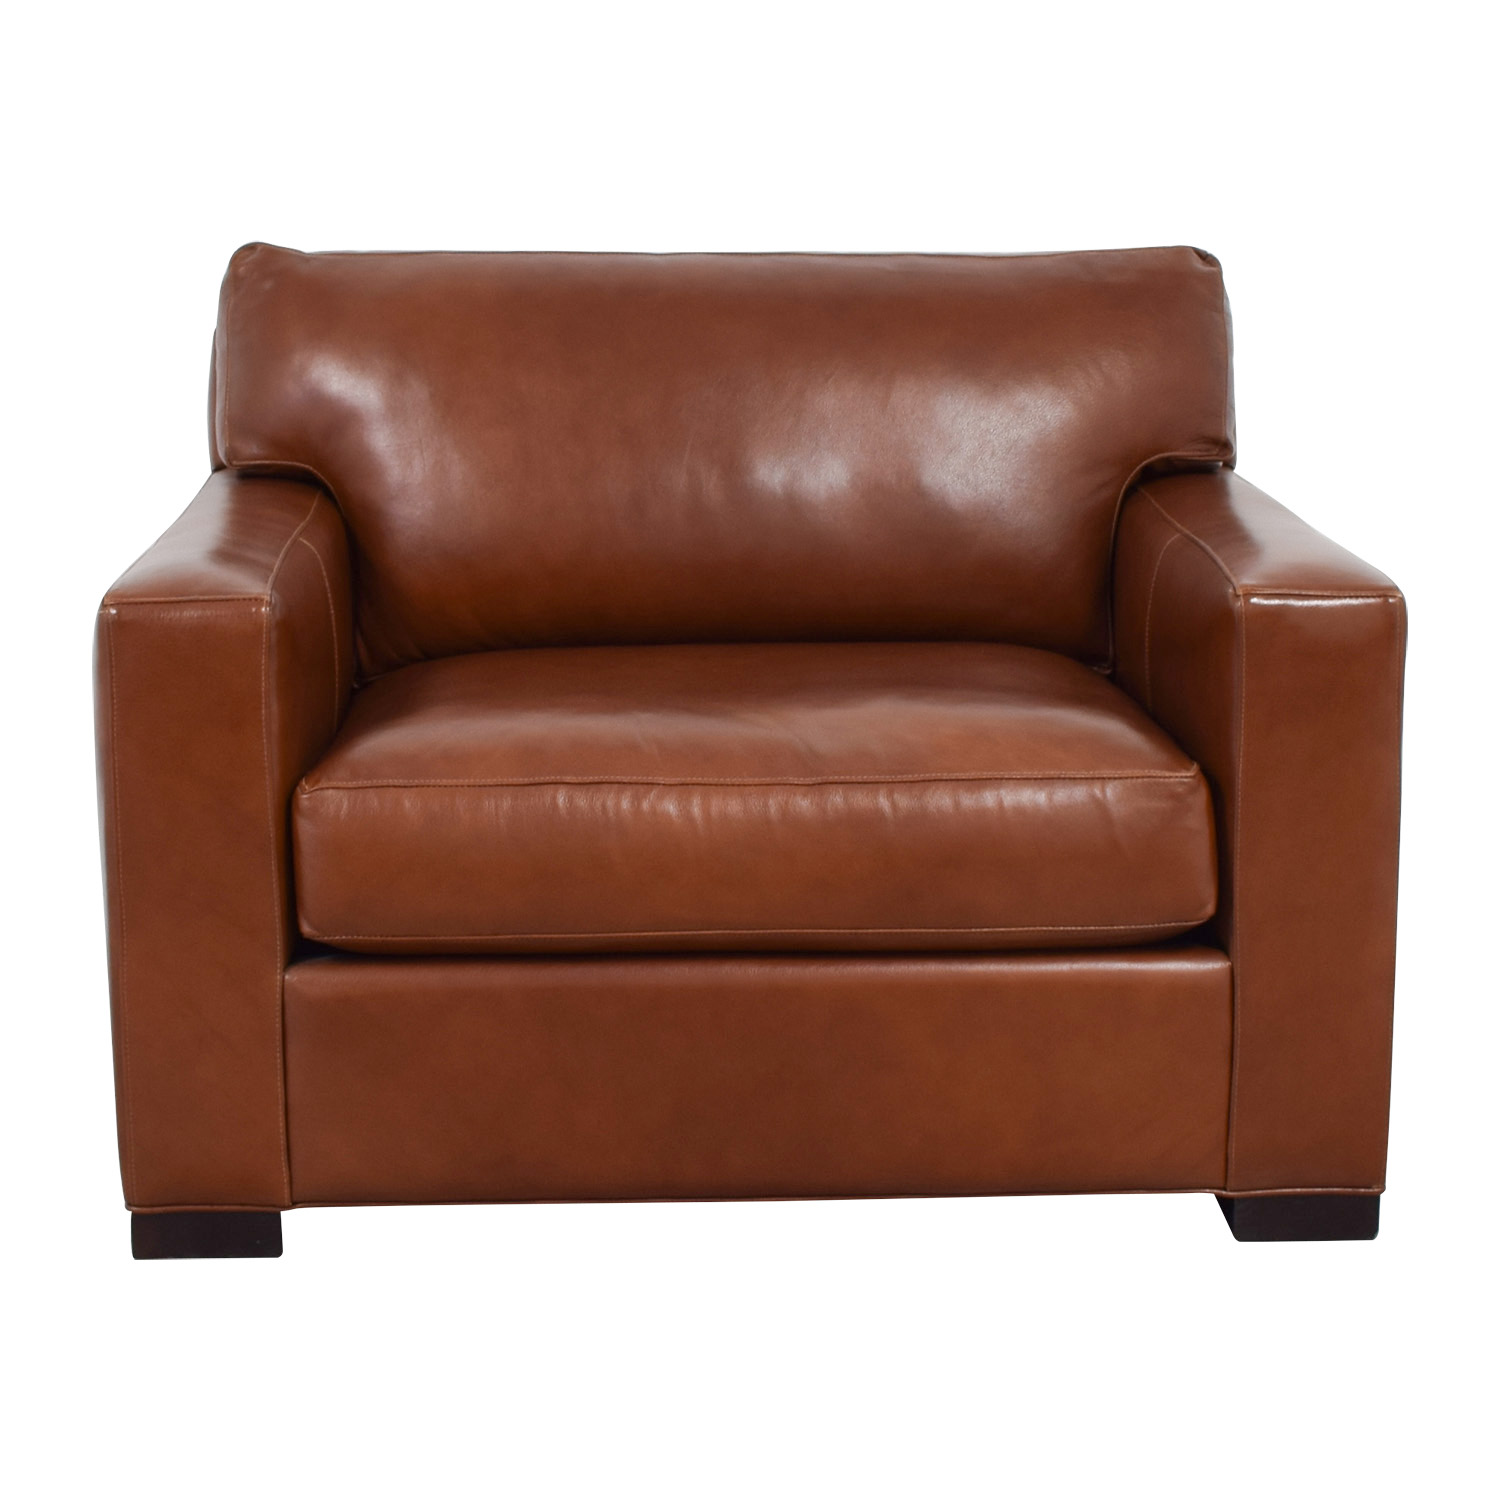 Crate & Barrel Axis II Brown Leather Chair and Ottoman sale